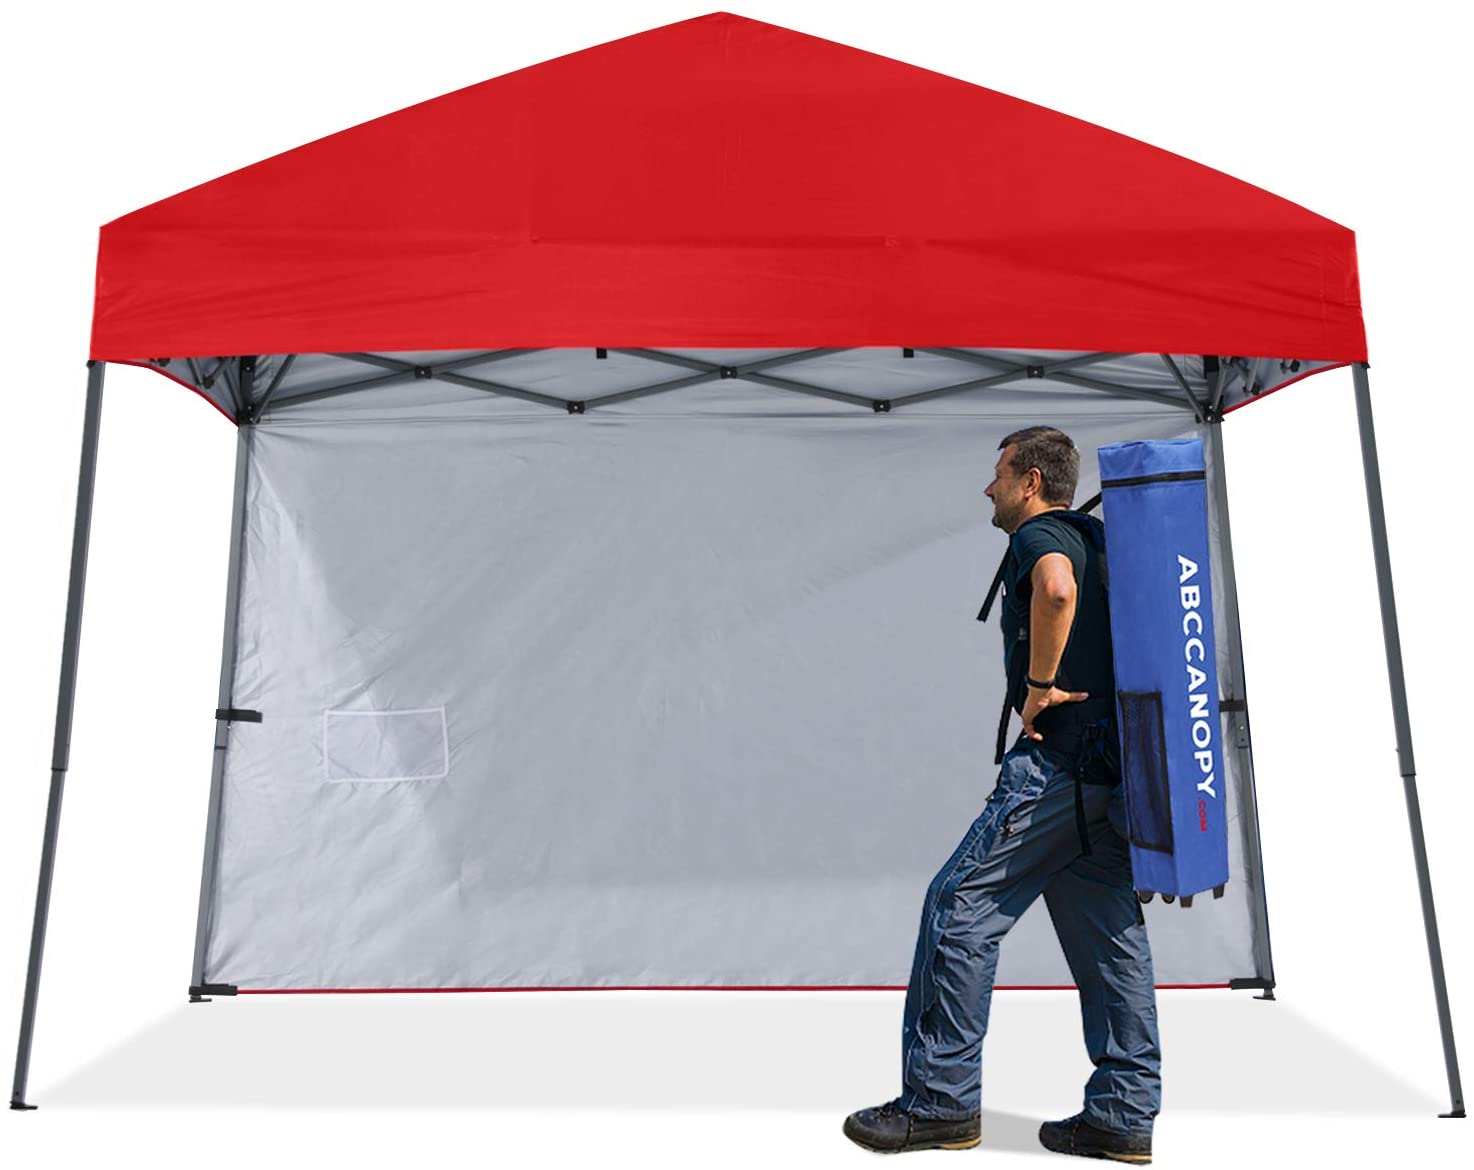 Outdoor Pop Up Canopy Beach Camping Canopy